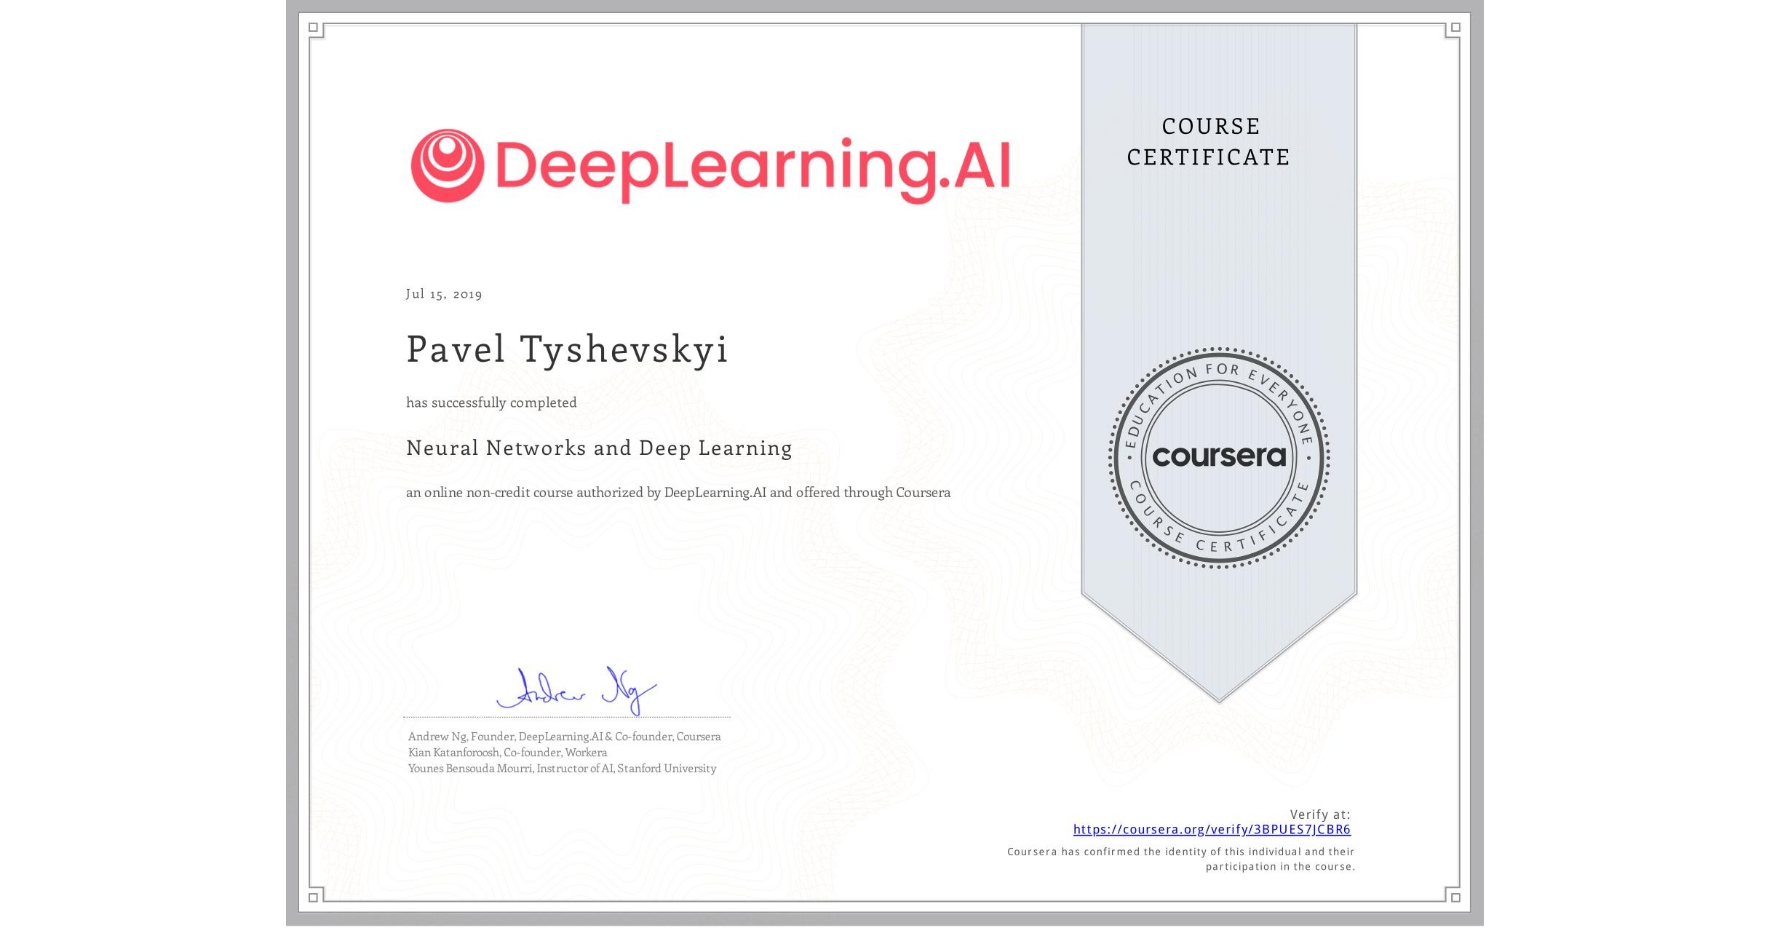 View certificate for Pavel Tyshevskyi, Neural Networks and Deep Learning, an online non-credit course authorized by DeepLearning.AI and offered through Coursera